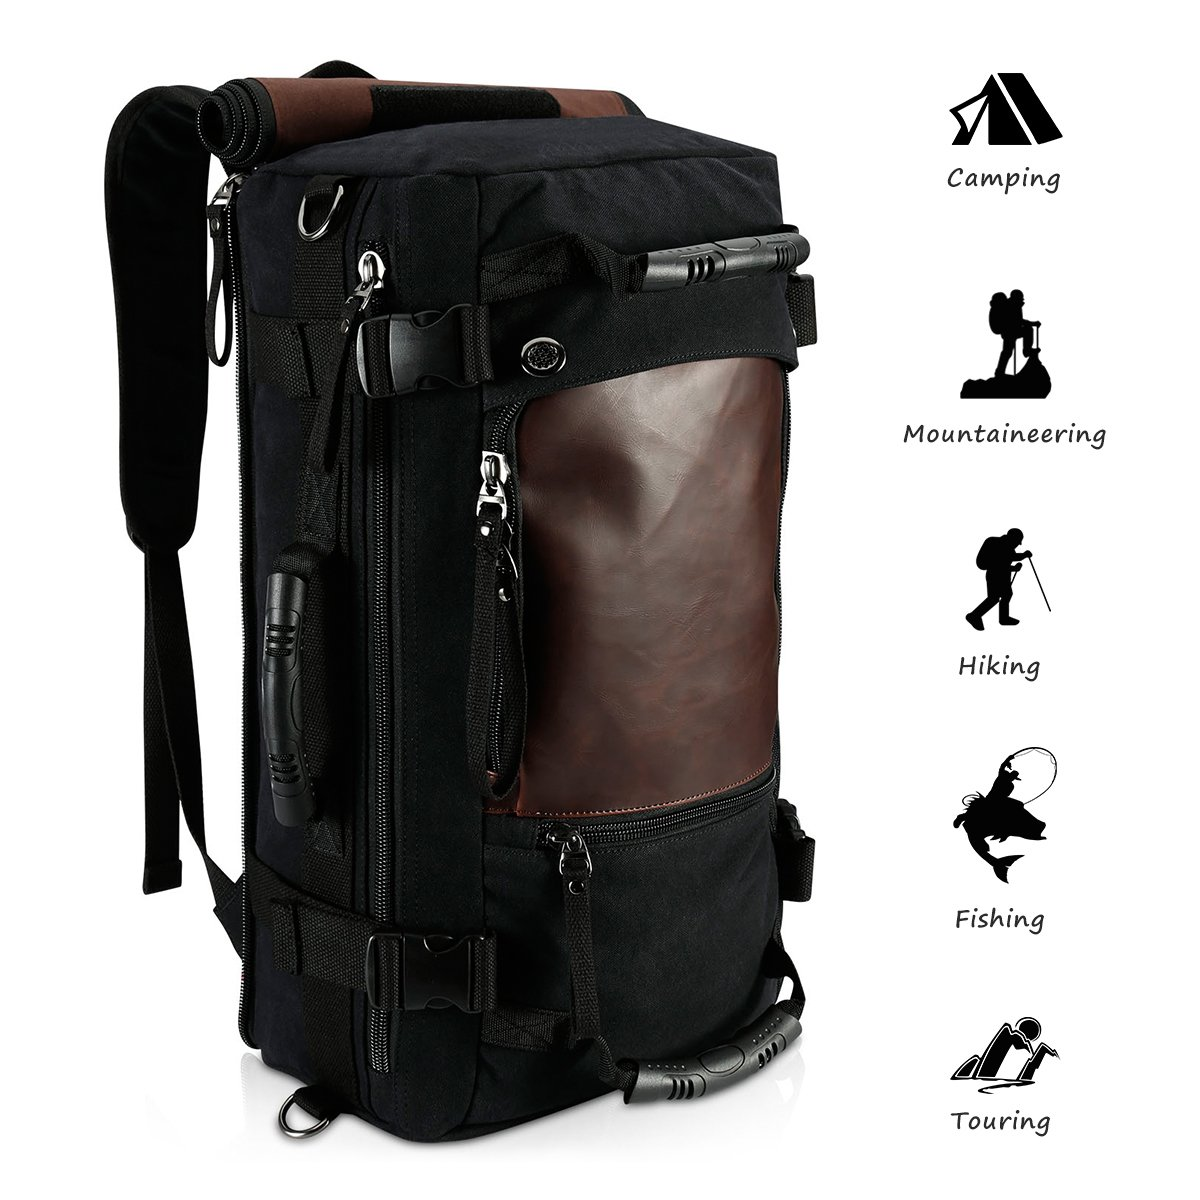 Amazon.com  Ibagbar Canvas Backpack Travel Bag Hiking Bag Rucksack Duffel  Bag Laptop Backpack Computer Bag Camping Bag Sports Bag Weekend Bag  Briefcase Bag ... 955c8d0e1f260